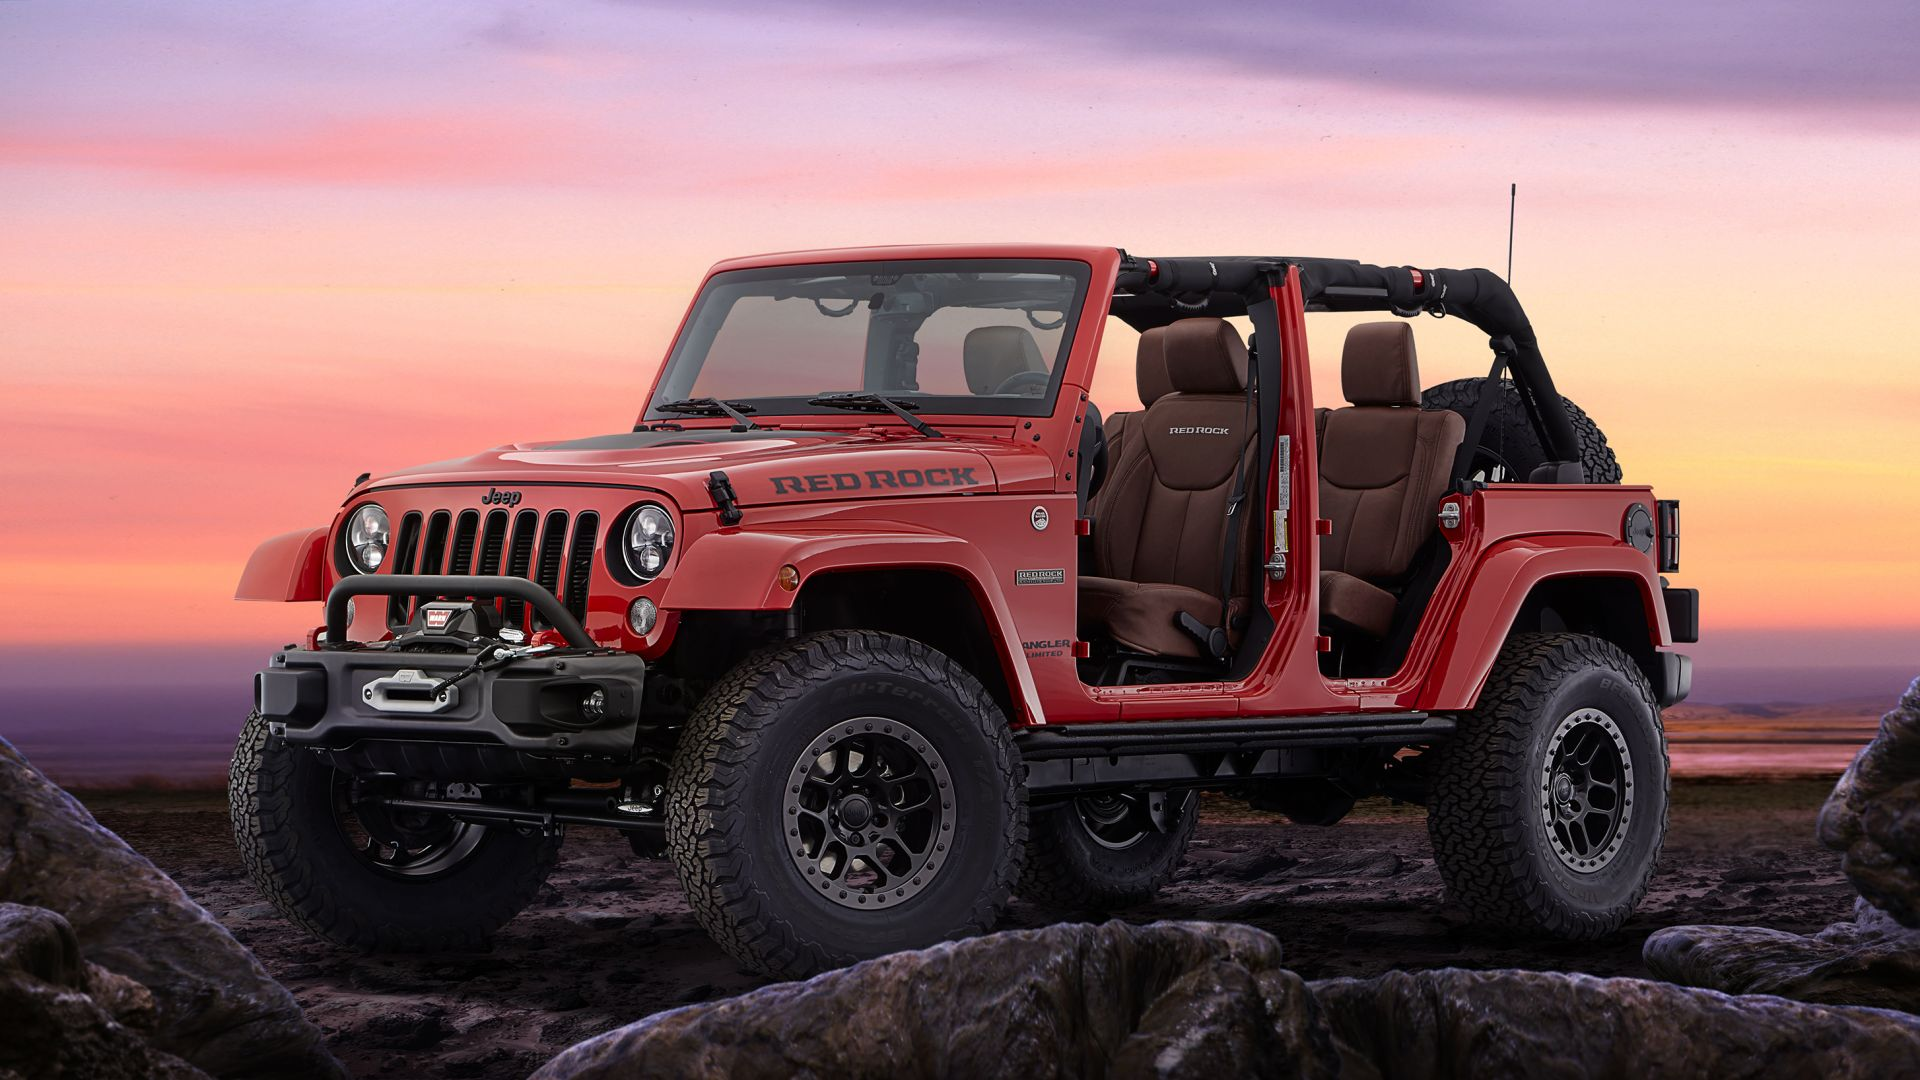 Jeep Red Rock, Jeep Wrangler, внедорожник, джип, Jeep Red Rock, Jeep Wrangler, SUV (horizontal)